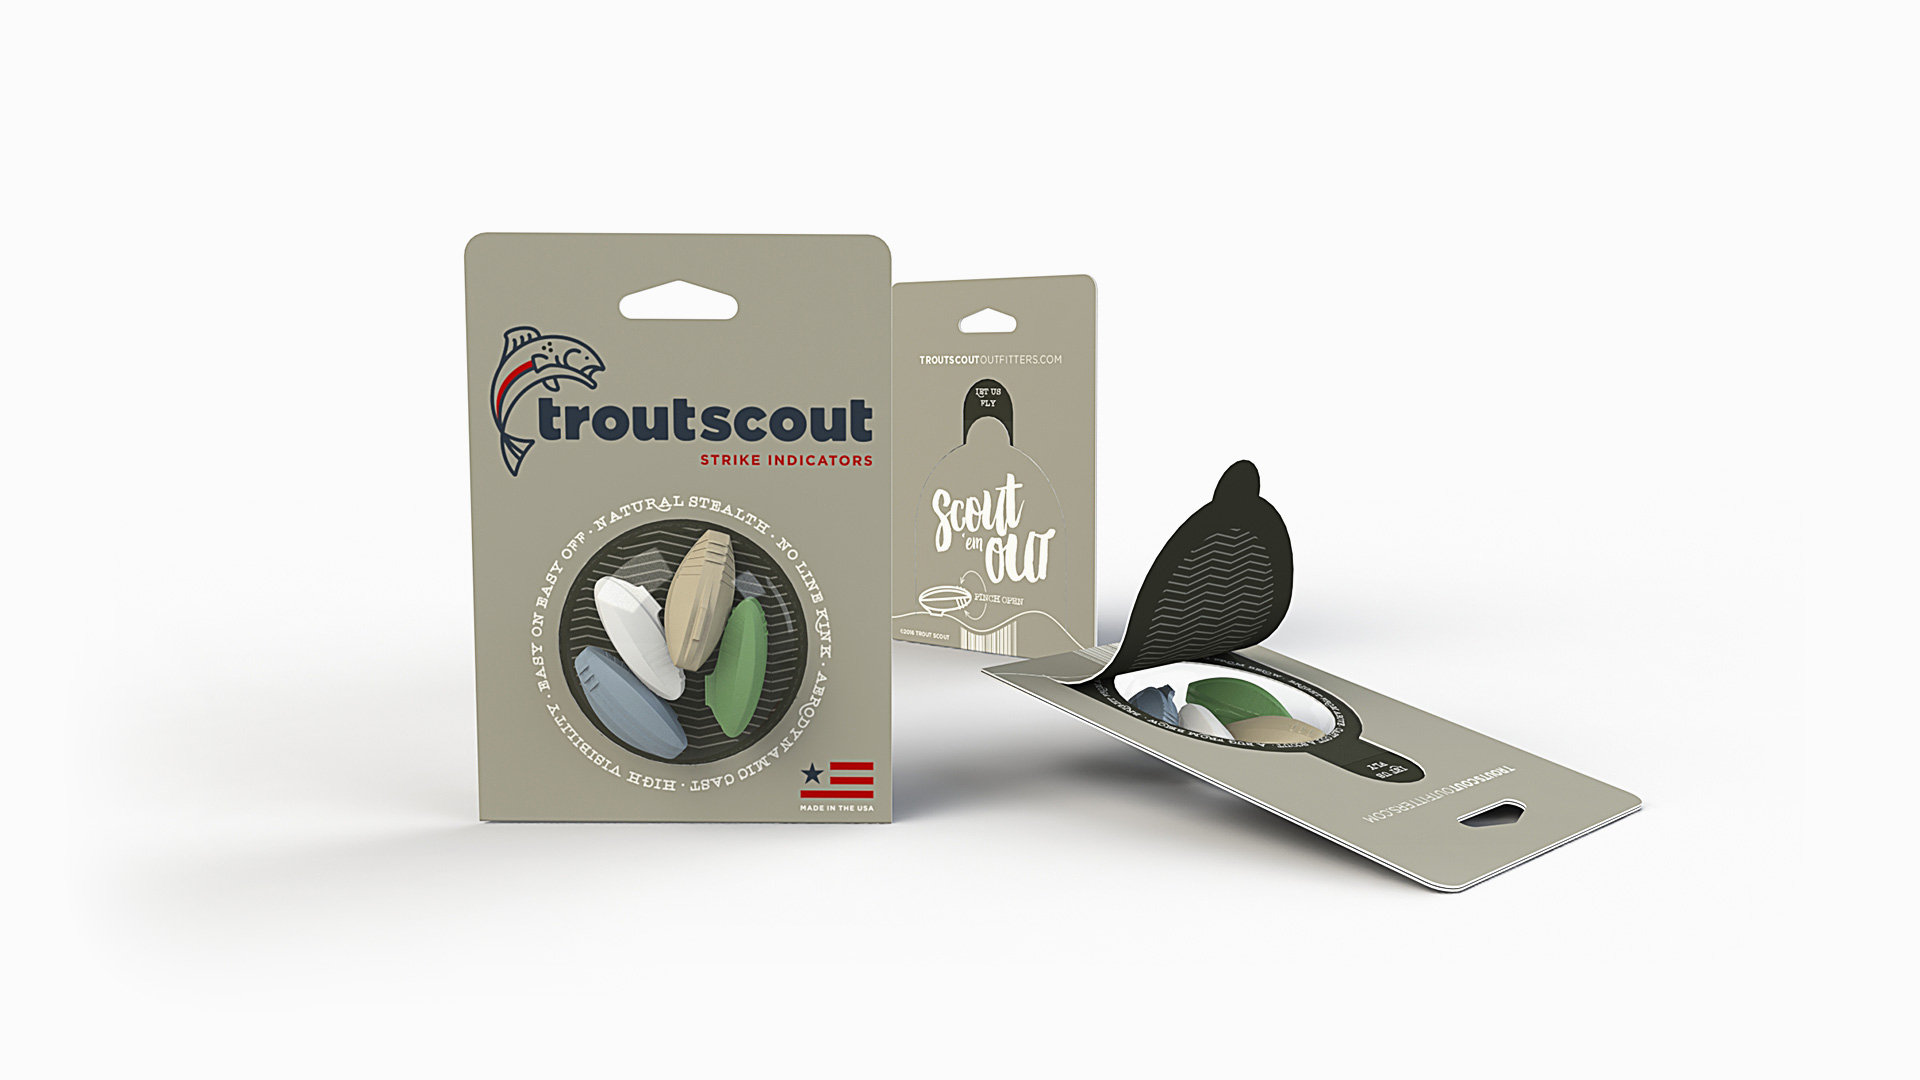 troutscout outfitters blister packaging design